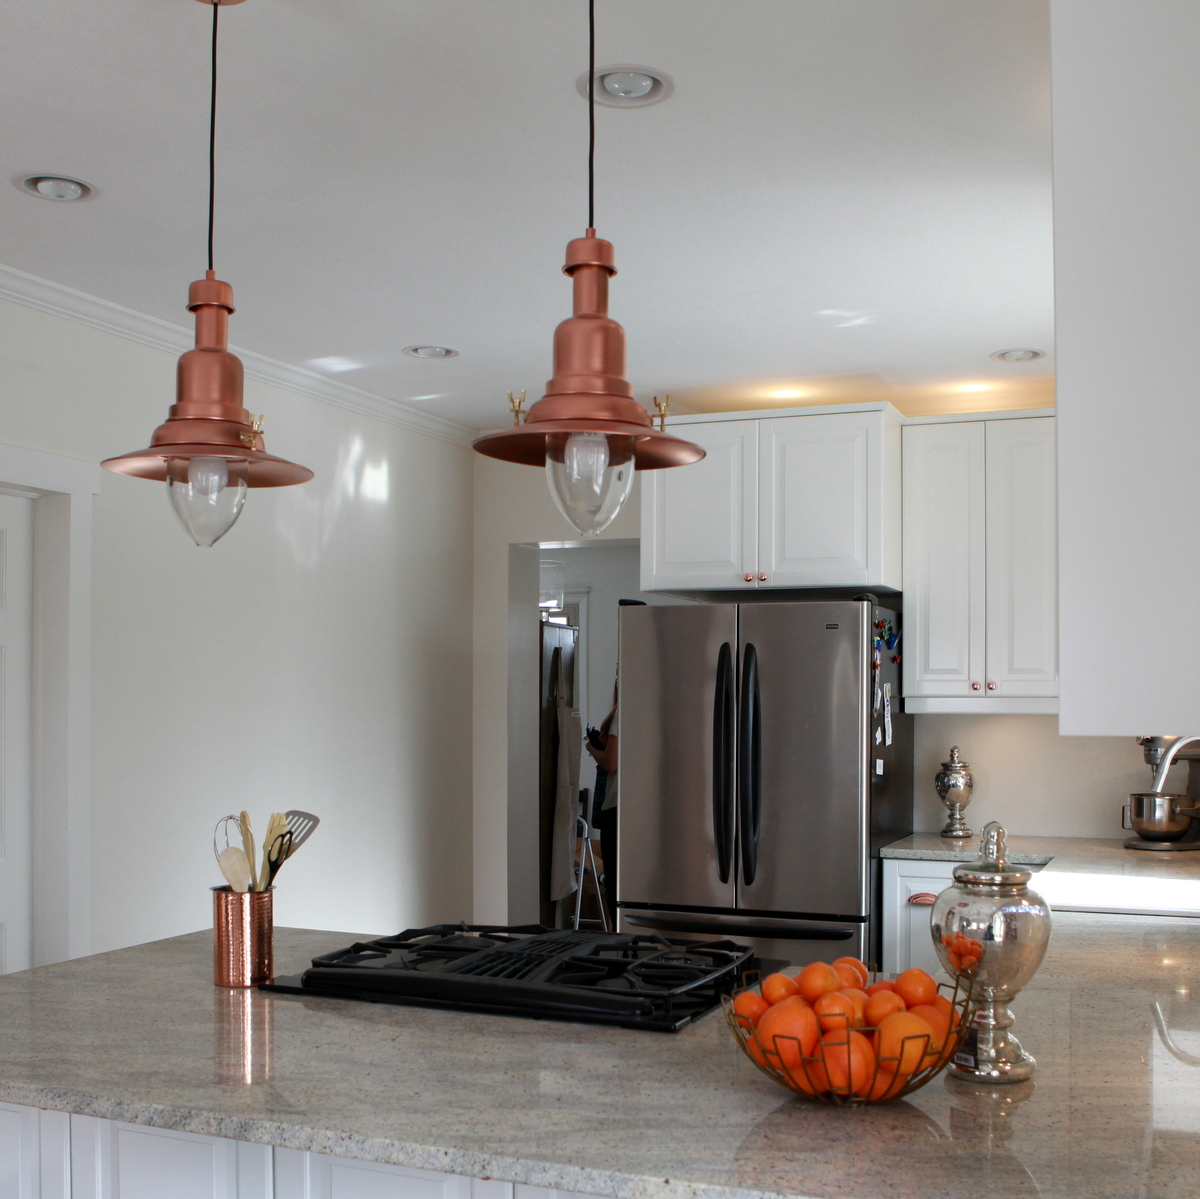 copper barn light ikea hack copper pendant light kitchen IKEA hack how to turn an OTTAVA light into a copper barn pendant light